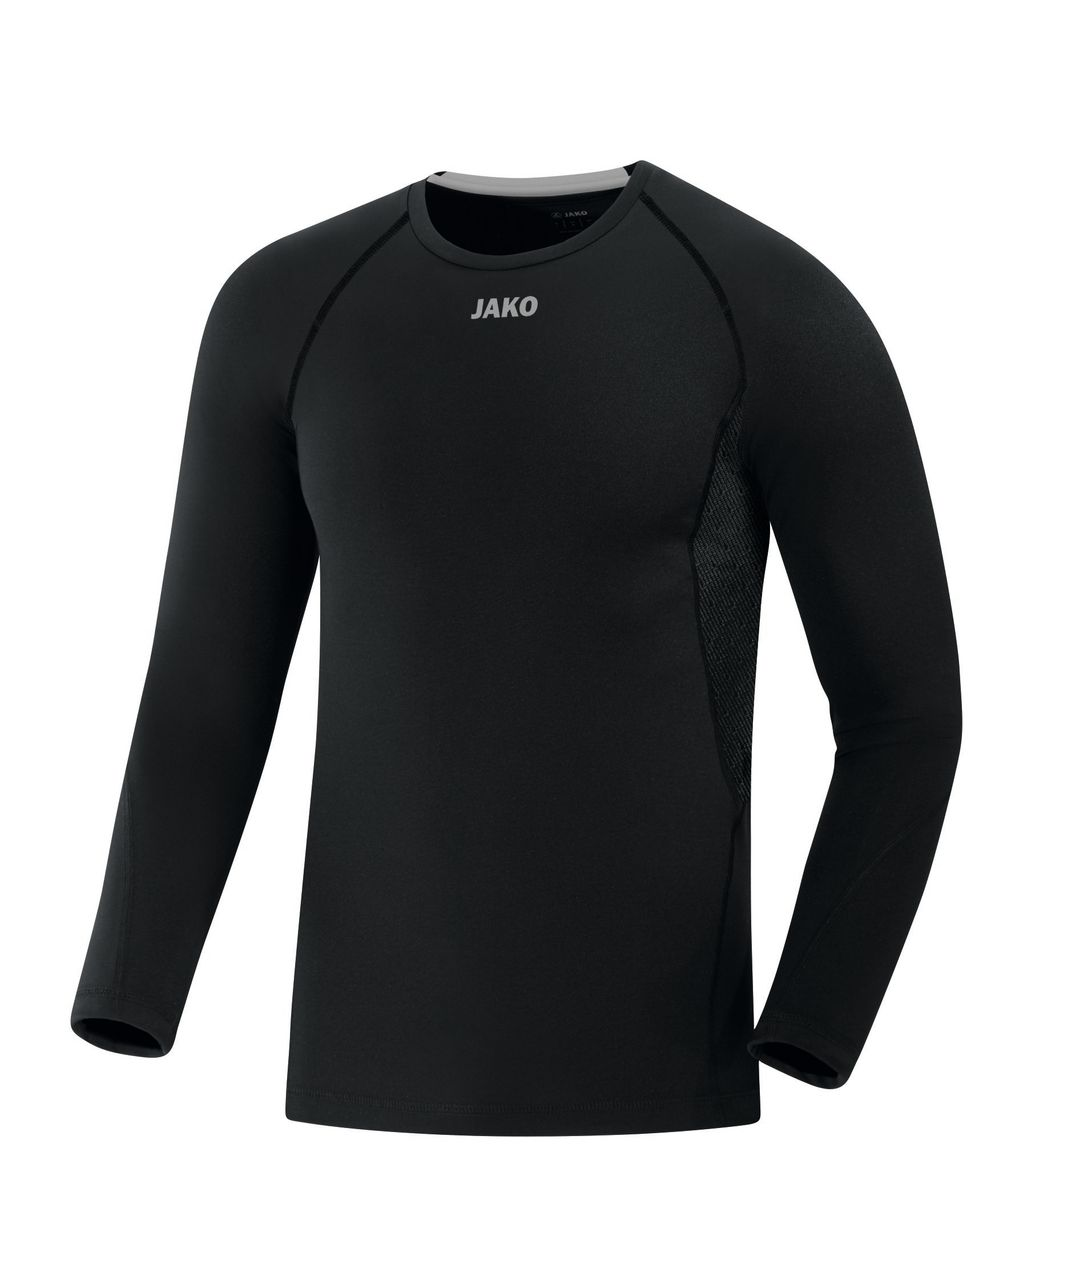 JAKO long sleeve compression 2.0